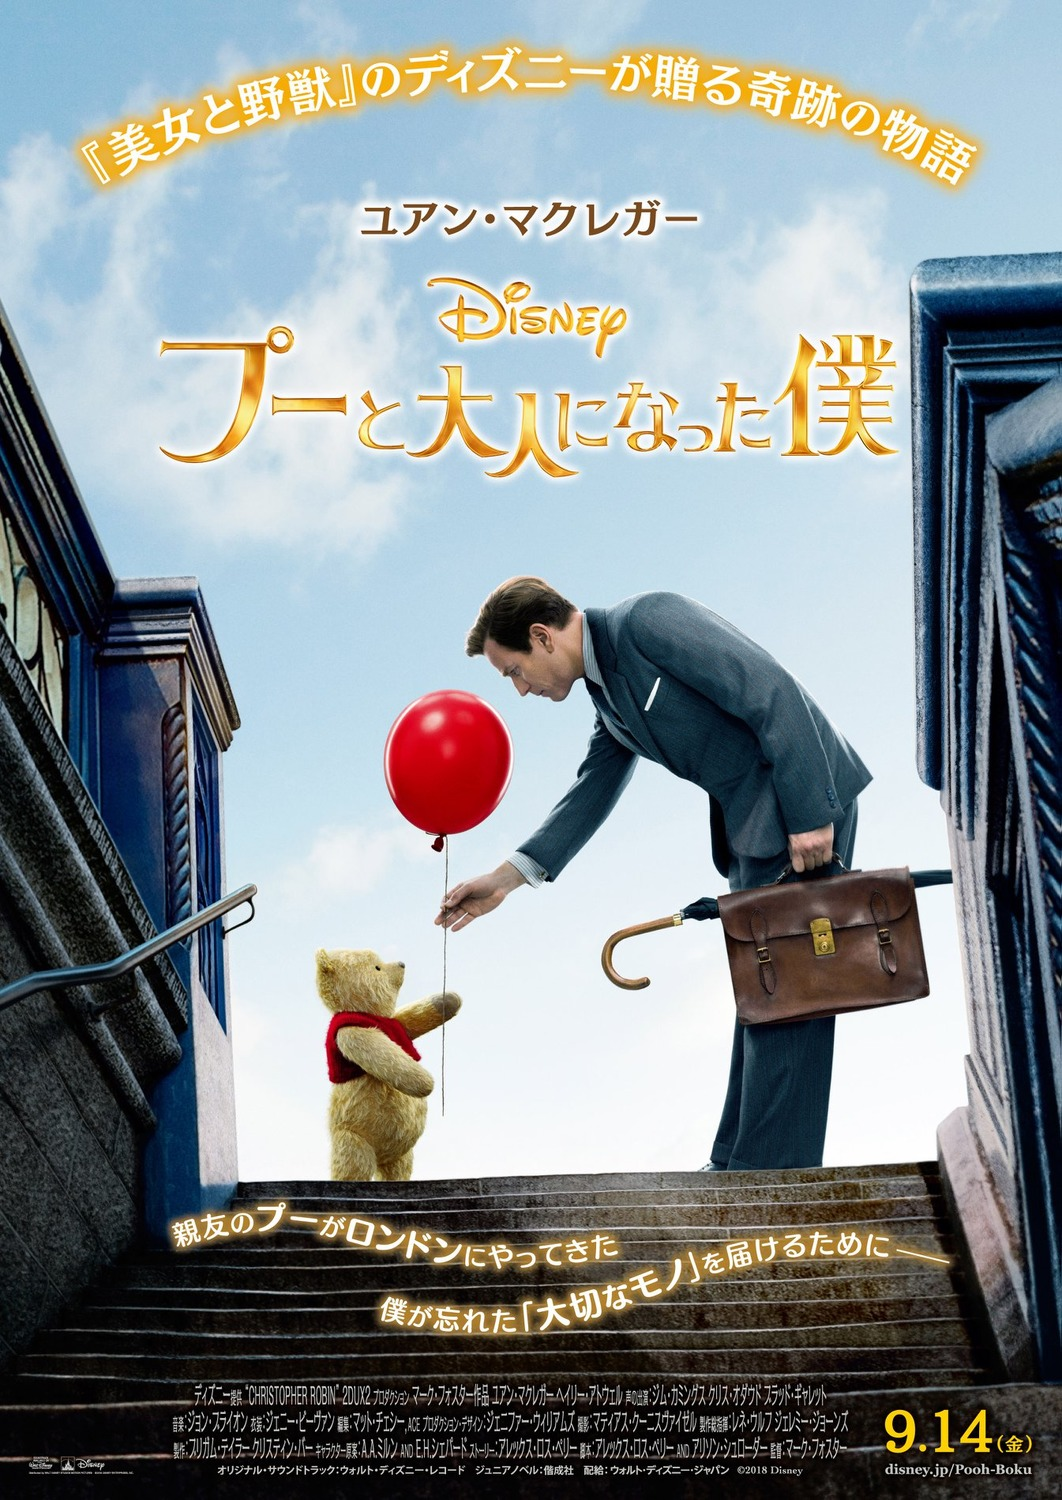 charming-new-poster-for-disneys-winnie-the-pooh-film-christopher-robin12